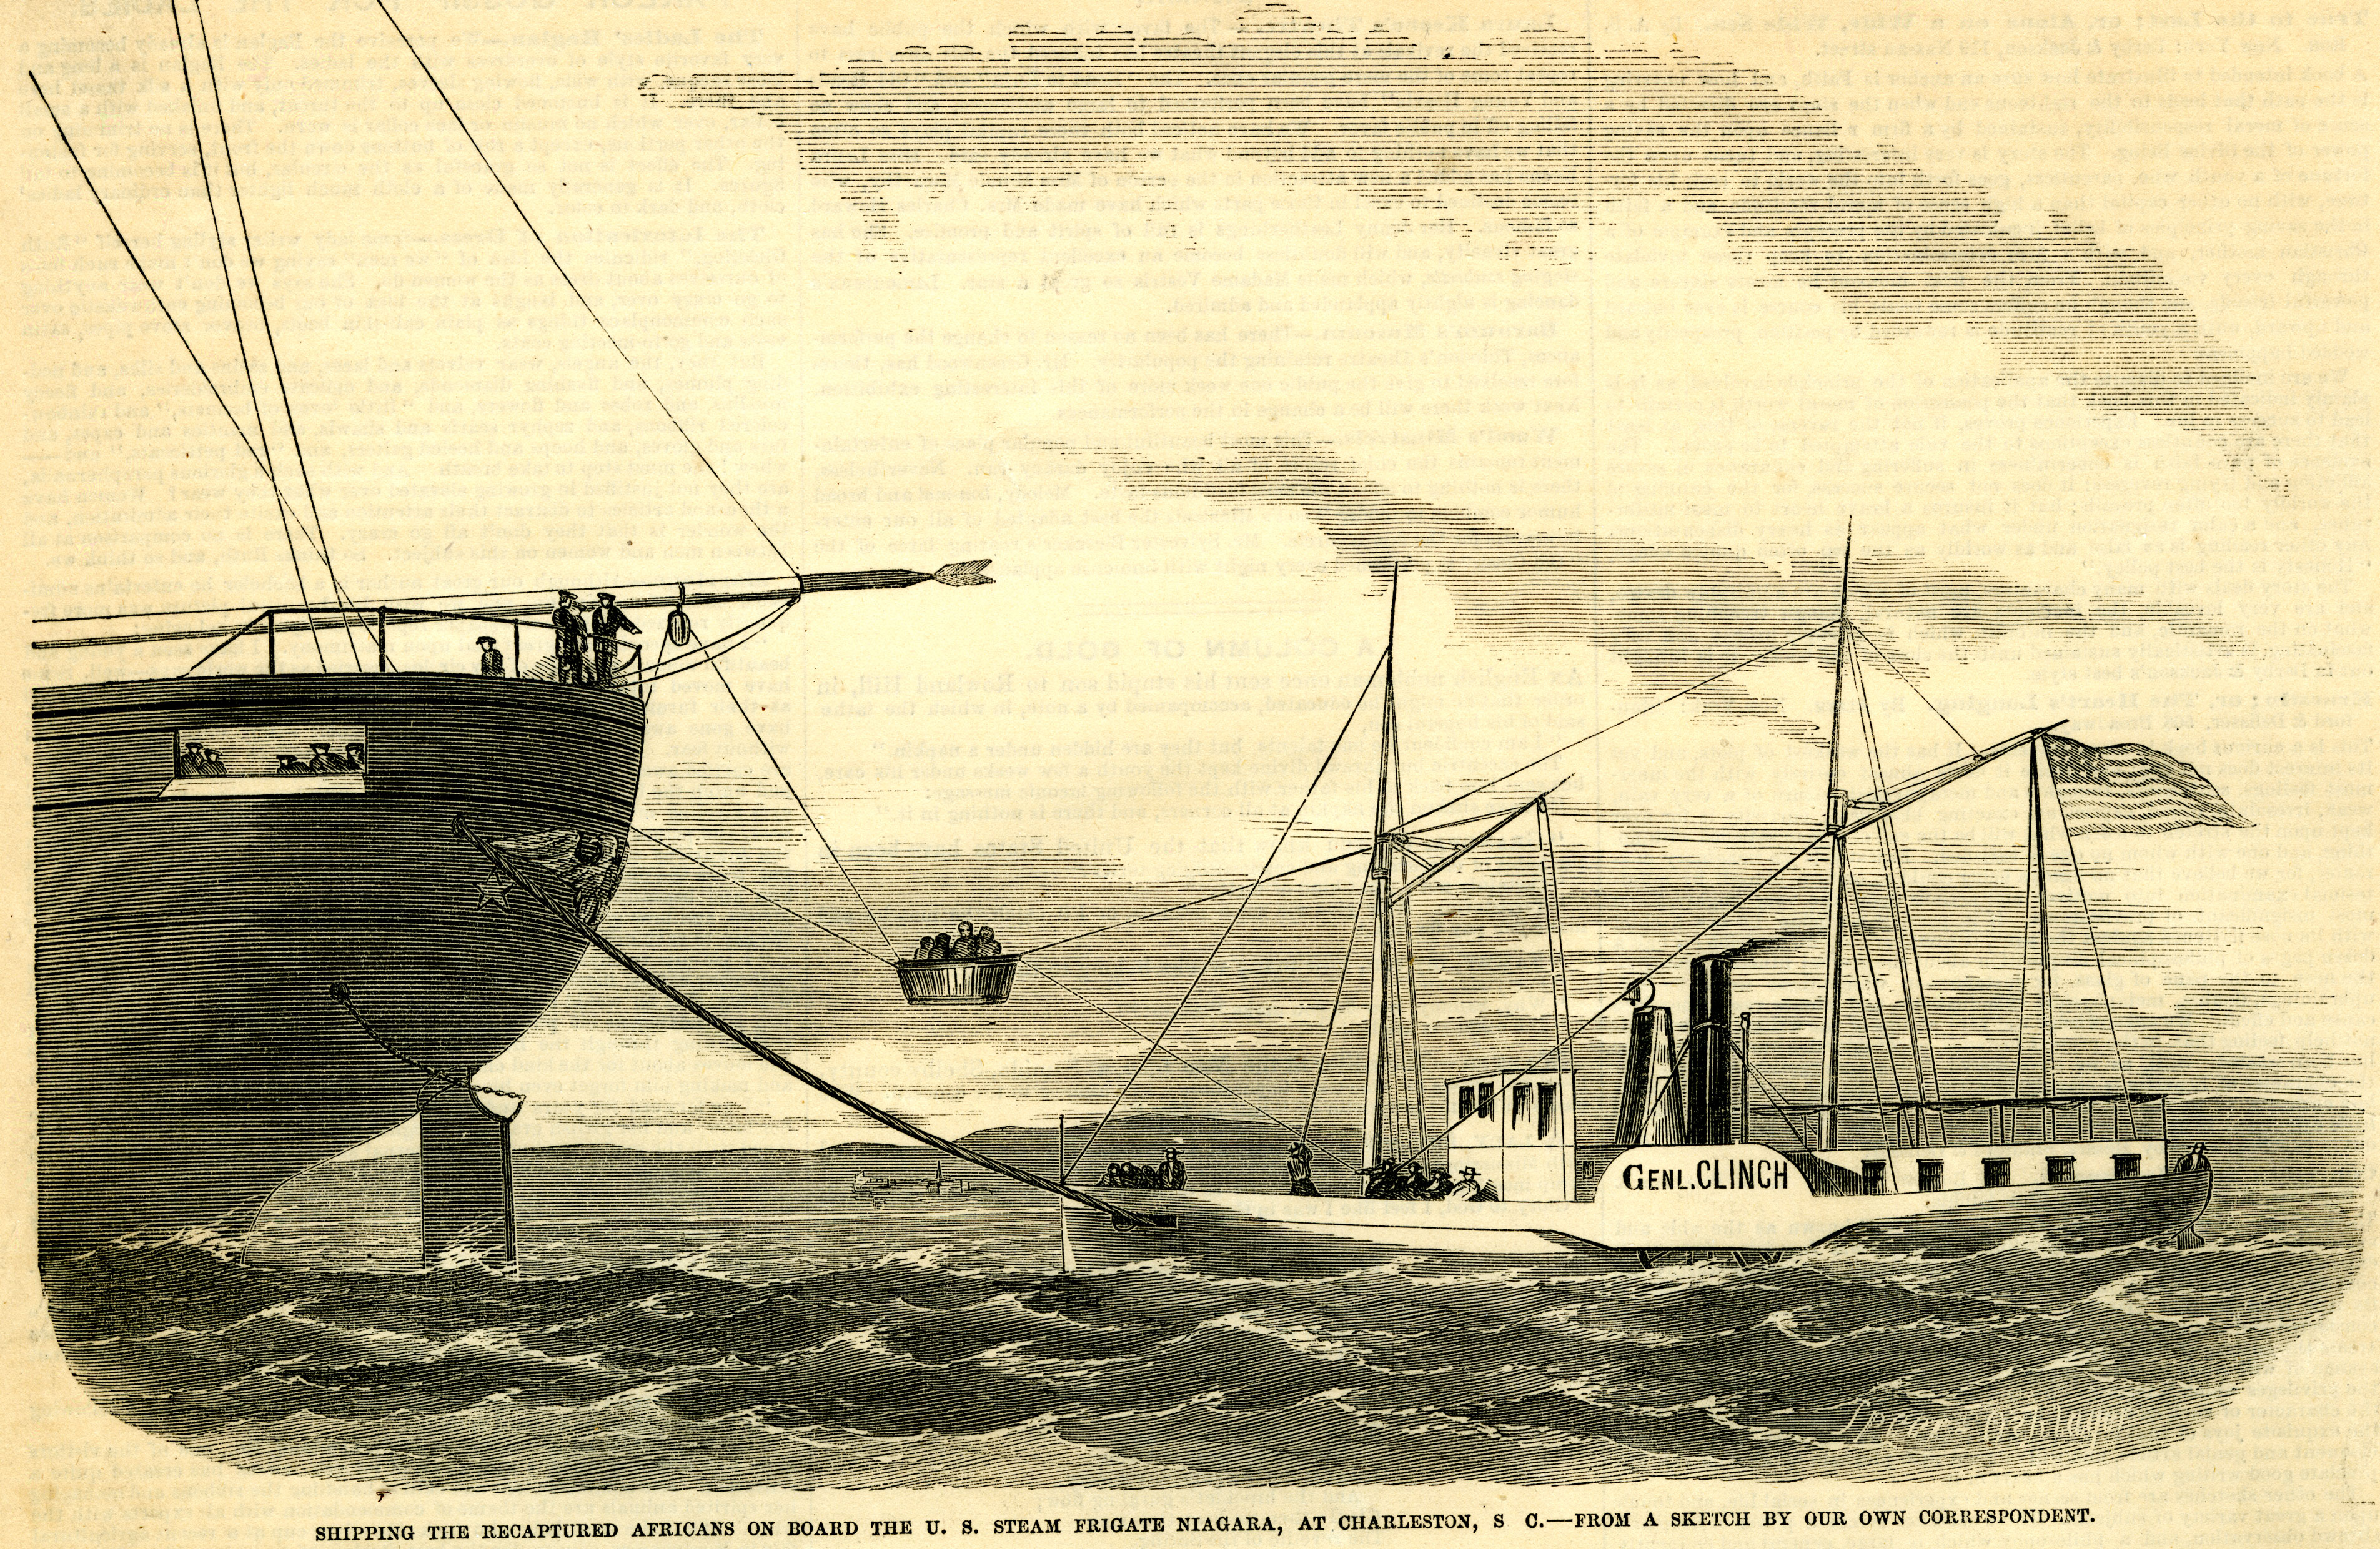 1858 newspaper illustration with caption: 'Shipping the recaptured Africans on board the U.S. steam frigate Niagara, at Charleston, S.C.--from a sketch by our own correspondent.' [full date Oct. 9, 1858]